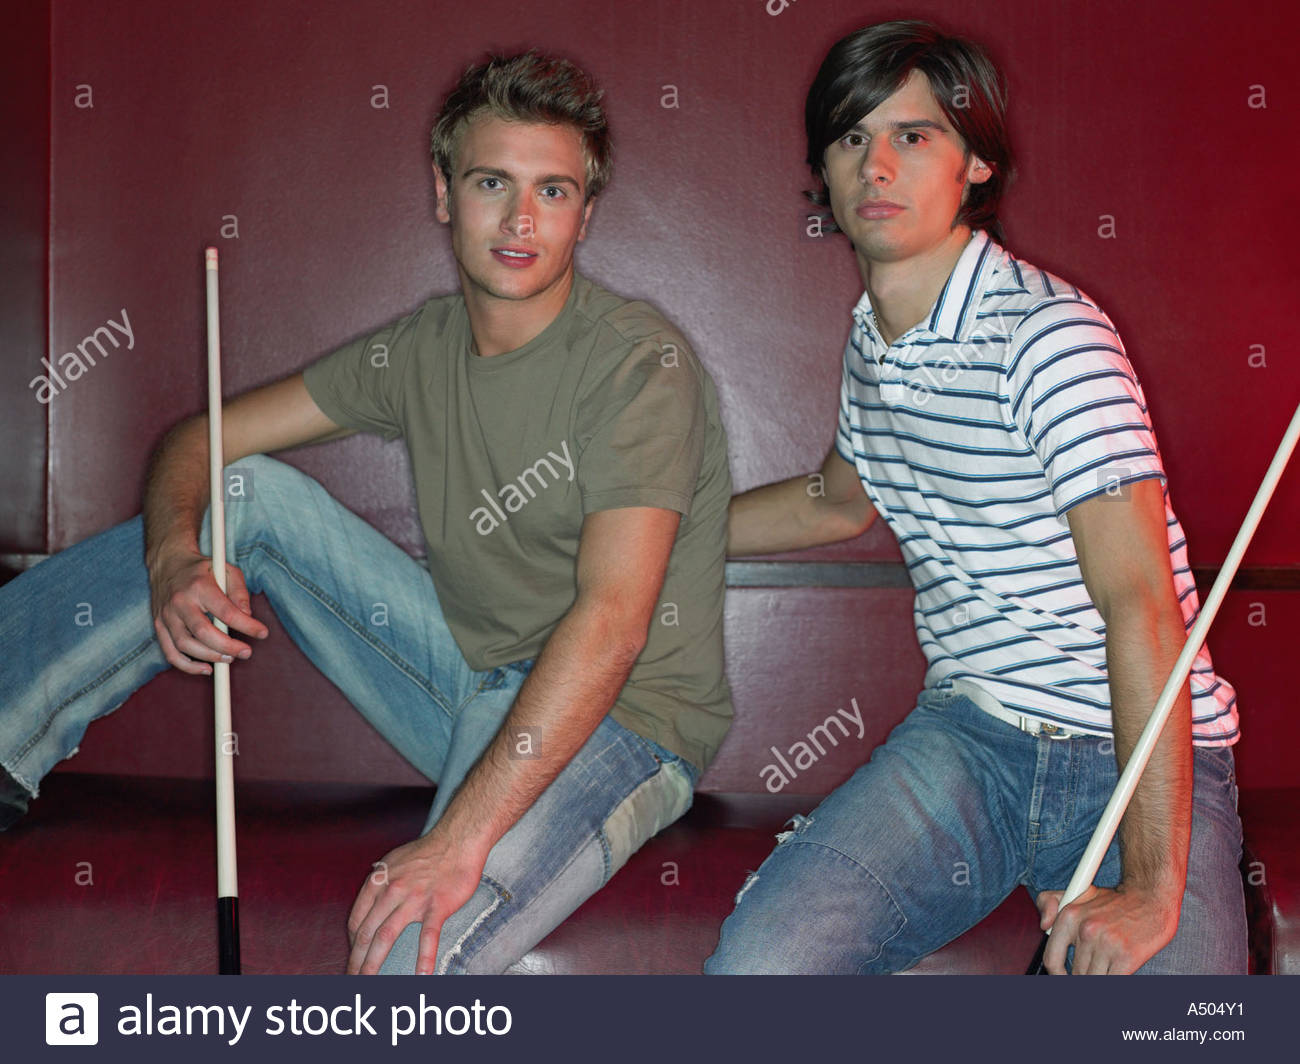 Two men sitting holding pool cues - Stock Image